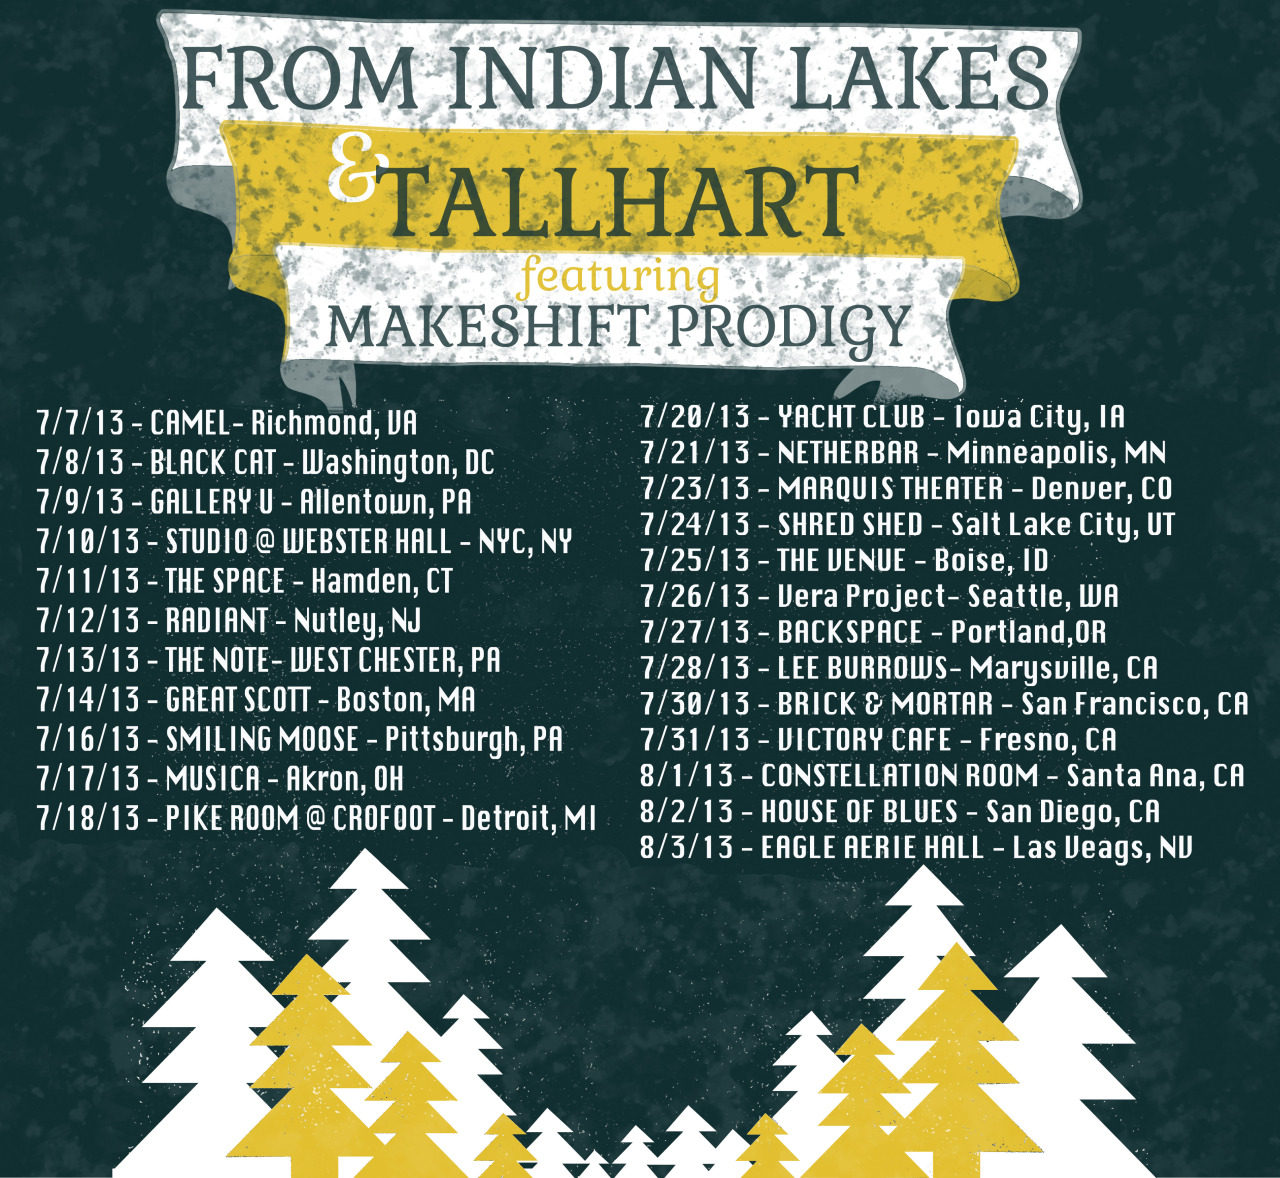 We will be heading out on a Co-Headlining tour with the band Tallhart in July-August with special guests Makeshift prodigy. Ticket links are being updated throughout today. See you soon!   7/7/2013 Camel                                   Richmond, VA 7/8/2013 Black Cat                            Washington DC 7/9/2013 Gallery U                                Allentown, PA 7/10/2013 Studio @ Webster Hall        New York, NY 7/11/2013 The Space                            Hamden, CT 7/12/2013 Radiant                                    Nutley, NJ 7/13/2013 The Note                       West Chester, PA 7/14/2013 Great Scott                           Boston, MA 7/16/2013 Smiling Moose                   Pittsburgh, PA 7/17/2013 Musica                                    Akron, OH 7/18/2013 Pike Room @ Crofoot              Detroit, MI 7/19/2013 Subterranean                        Chicago, IL 7/20/2013 Yacht Club                            Iowa City, IA 7/21/2013 Nether Bar                     Minneapolis, MN 7/23/2013 Marquis Theater                     Denver, CO 7/24/2013 Shred Shed                   Salt Lake City, UT 7/25/2013 The Venue                                  Boise, ID 7/26/2013 Vera Project                            Seattle, WA 7/27/2013 Backspace                           Portland, OR 7/28/2013 Lee Burrows Art Center    Marysville, CA 7/30/2013 Brick & Mortar             San Francisco, CA 7/31/2013 Victory Cafe                           Fresno, CA 8/1/2013 Constellation Room            Santa Ana, CA 8/2/2013 House of Blues                  San Diego, CA 8/3/2013 Eagle Aerie Hall                Las Vegas, NV